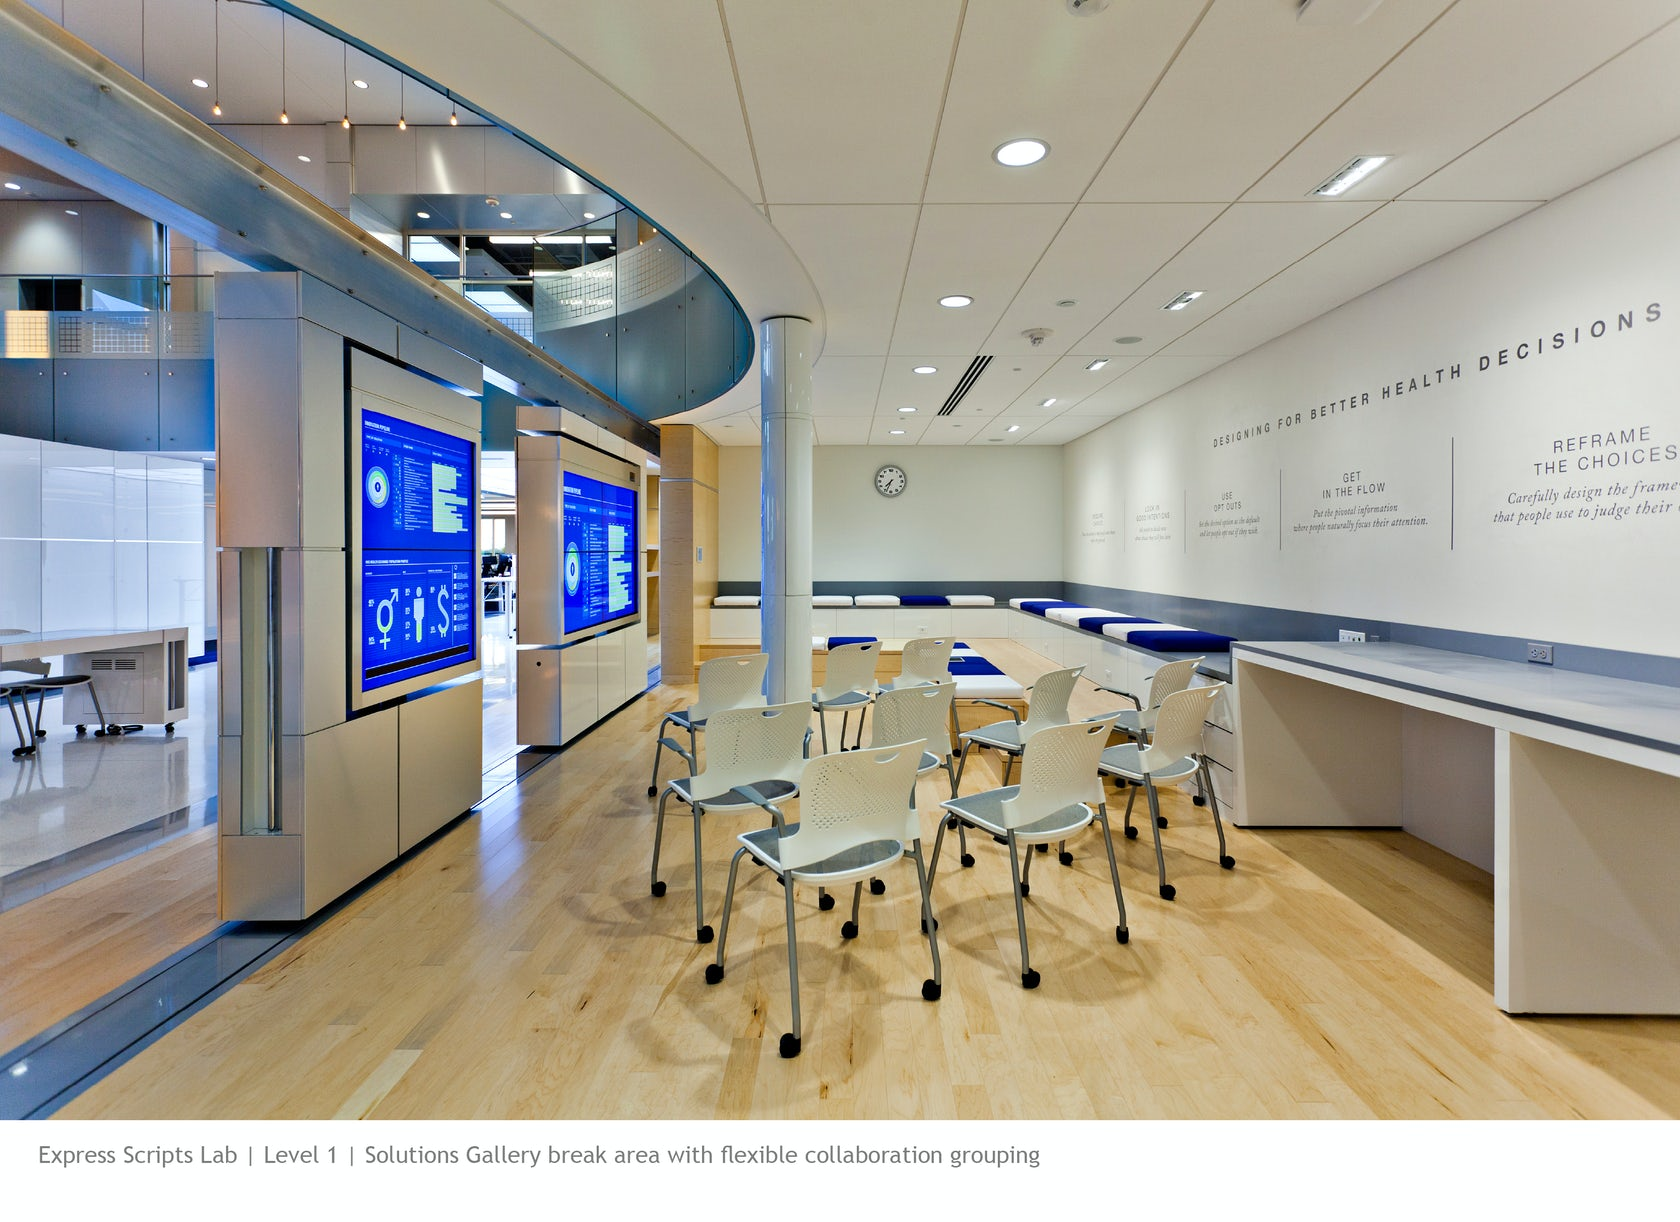 The Express Scripts Lab - Architizer